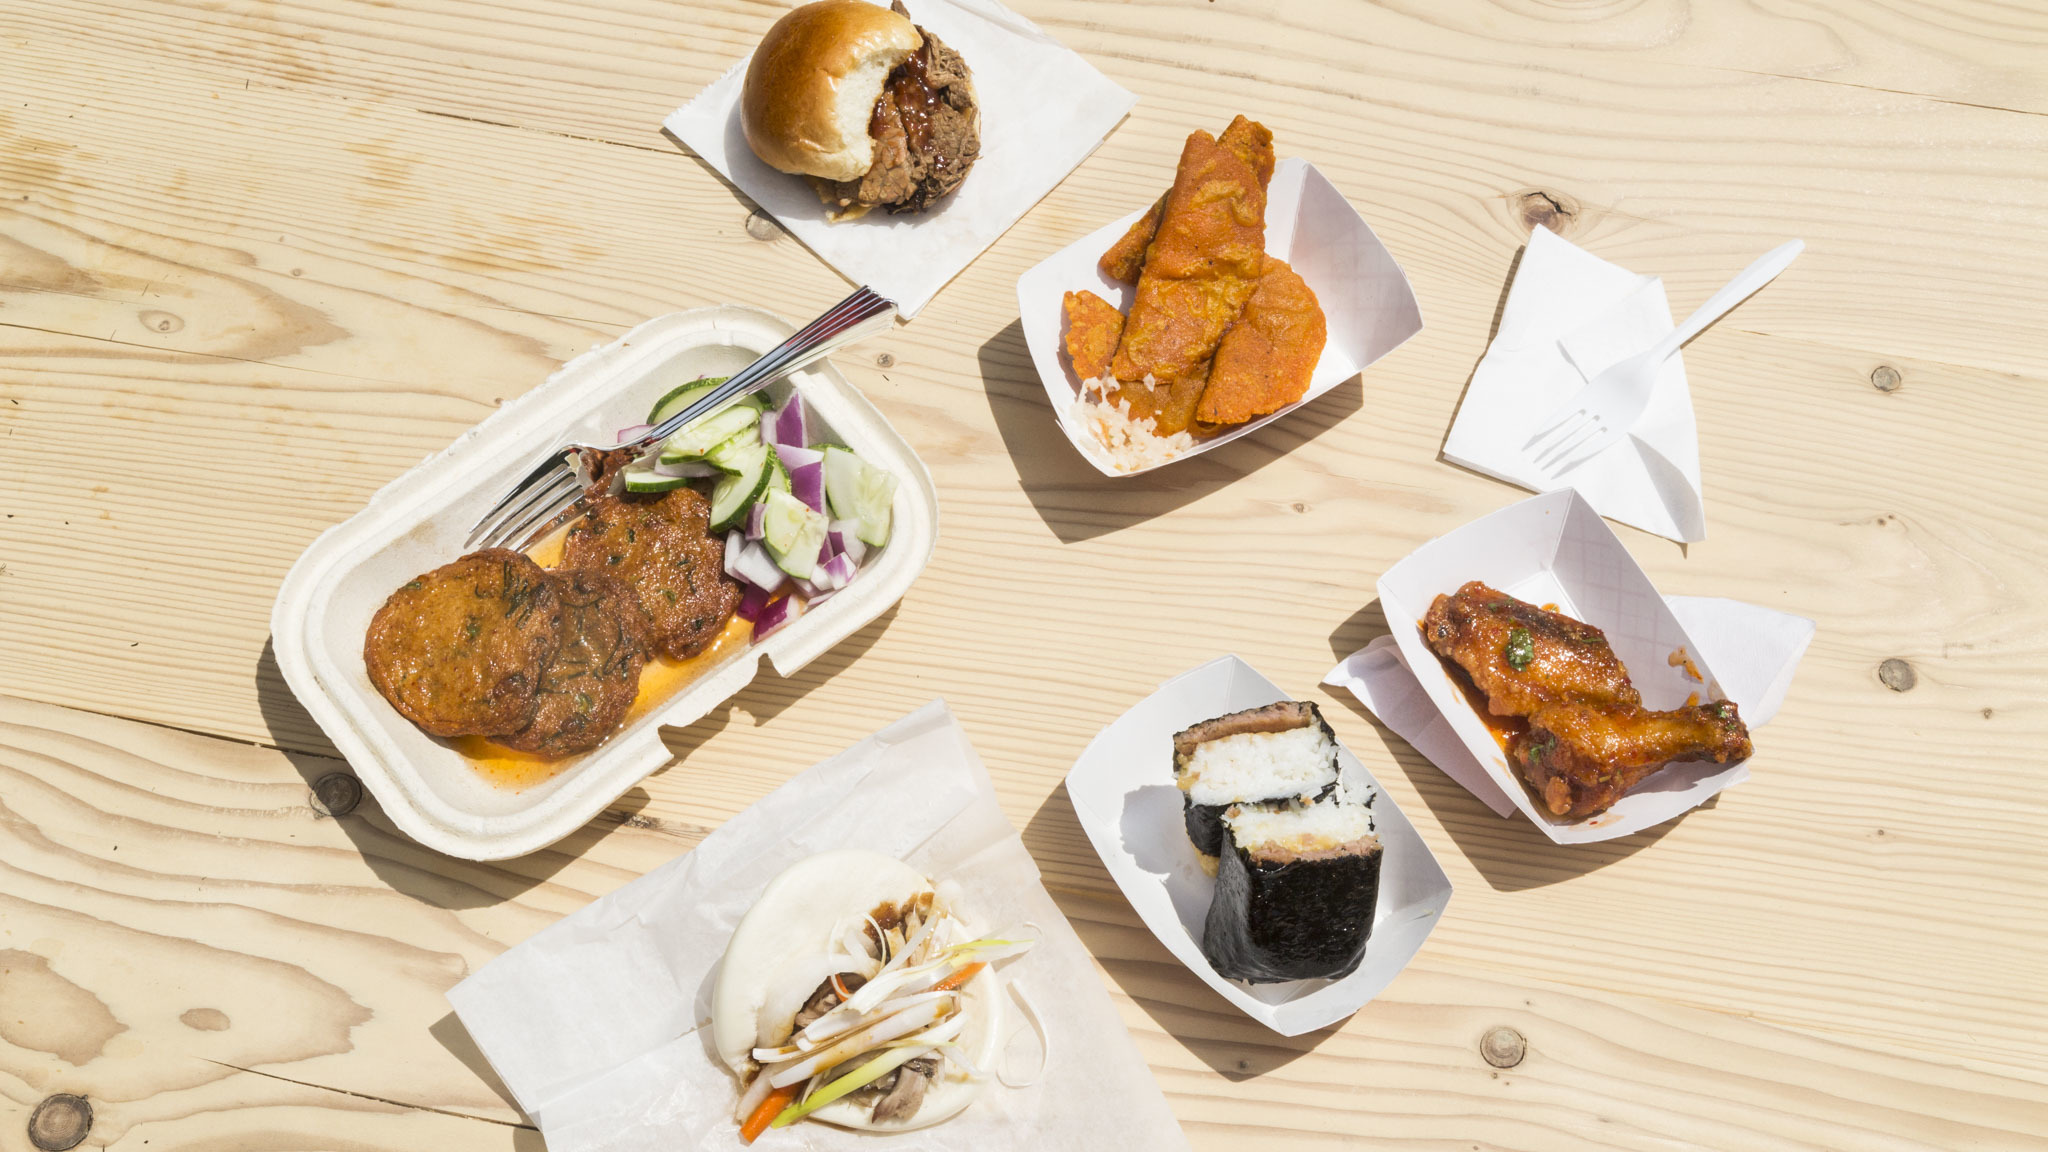 10 new dishes to eat at Taste of Chicago 2018